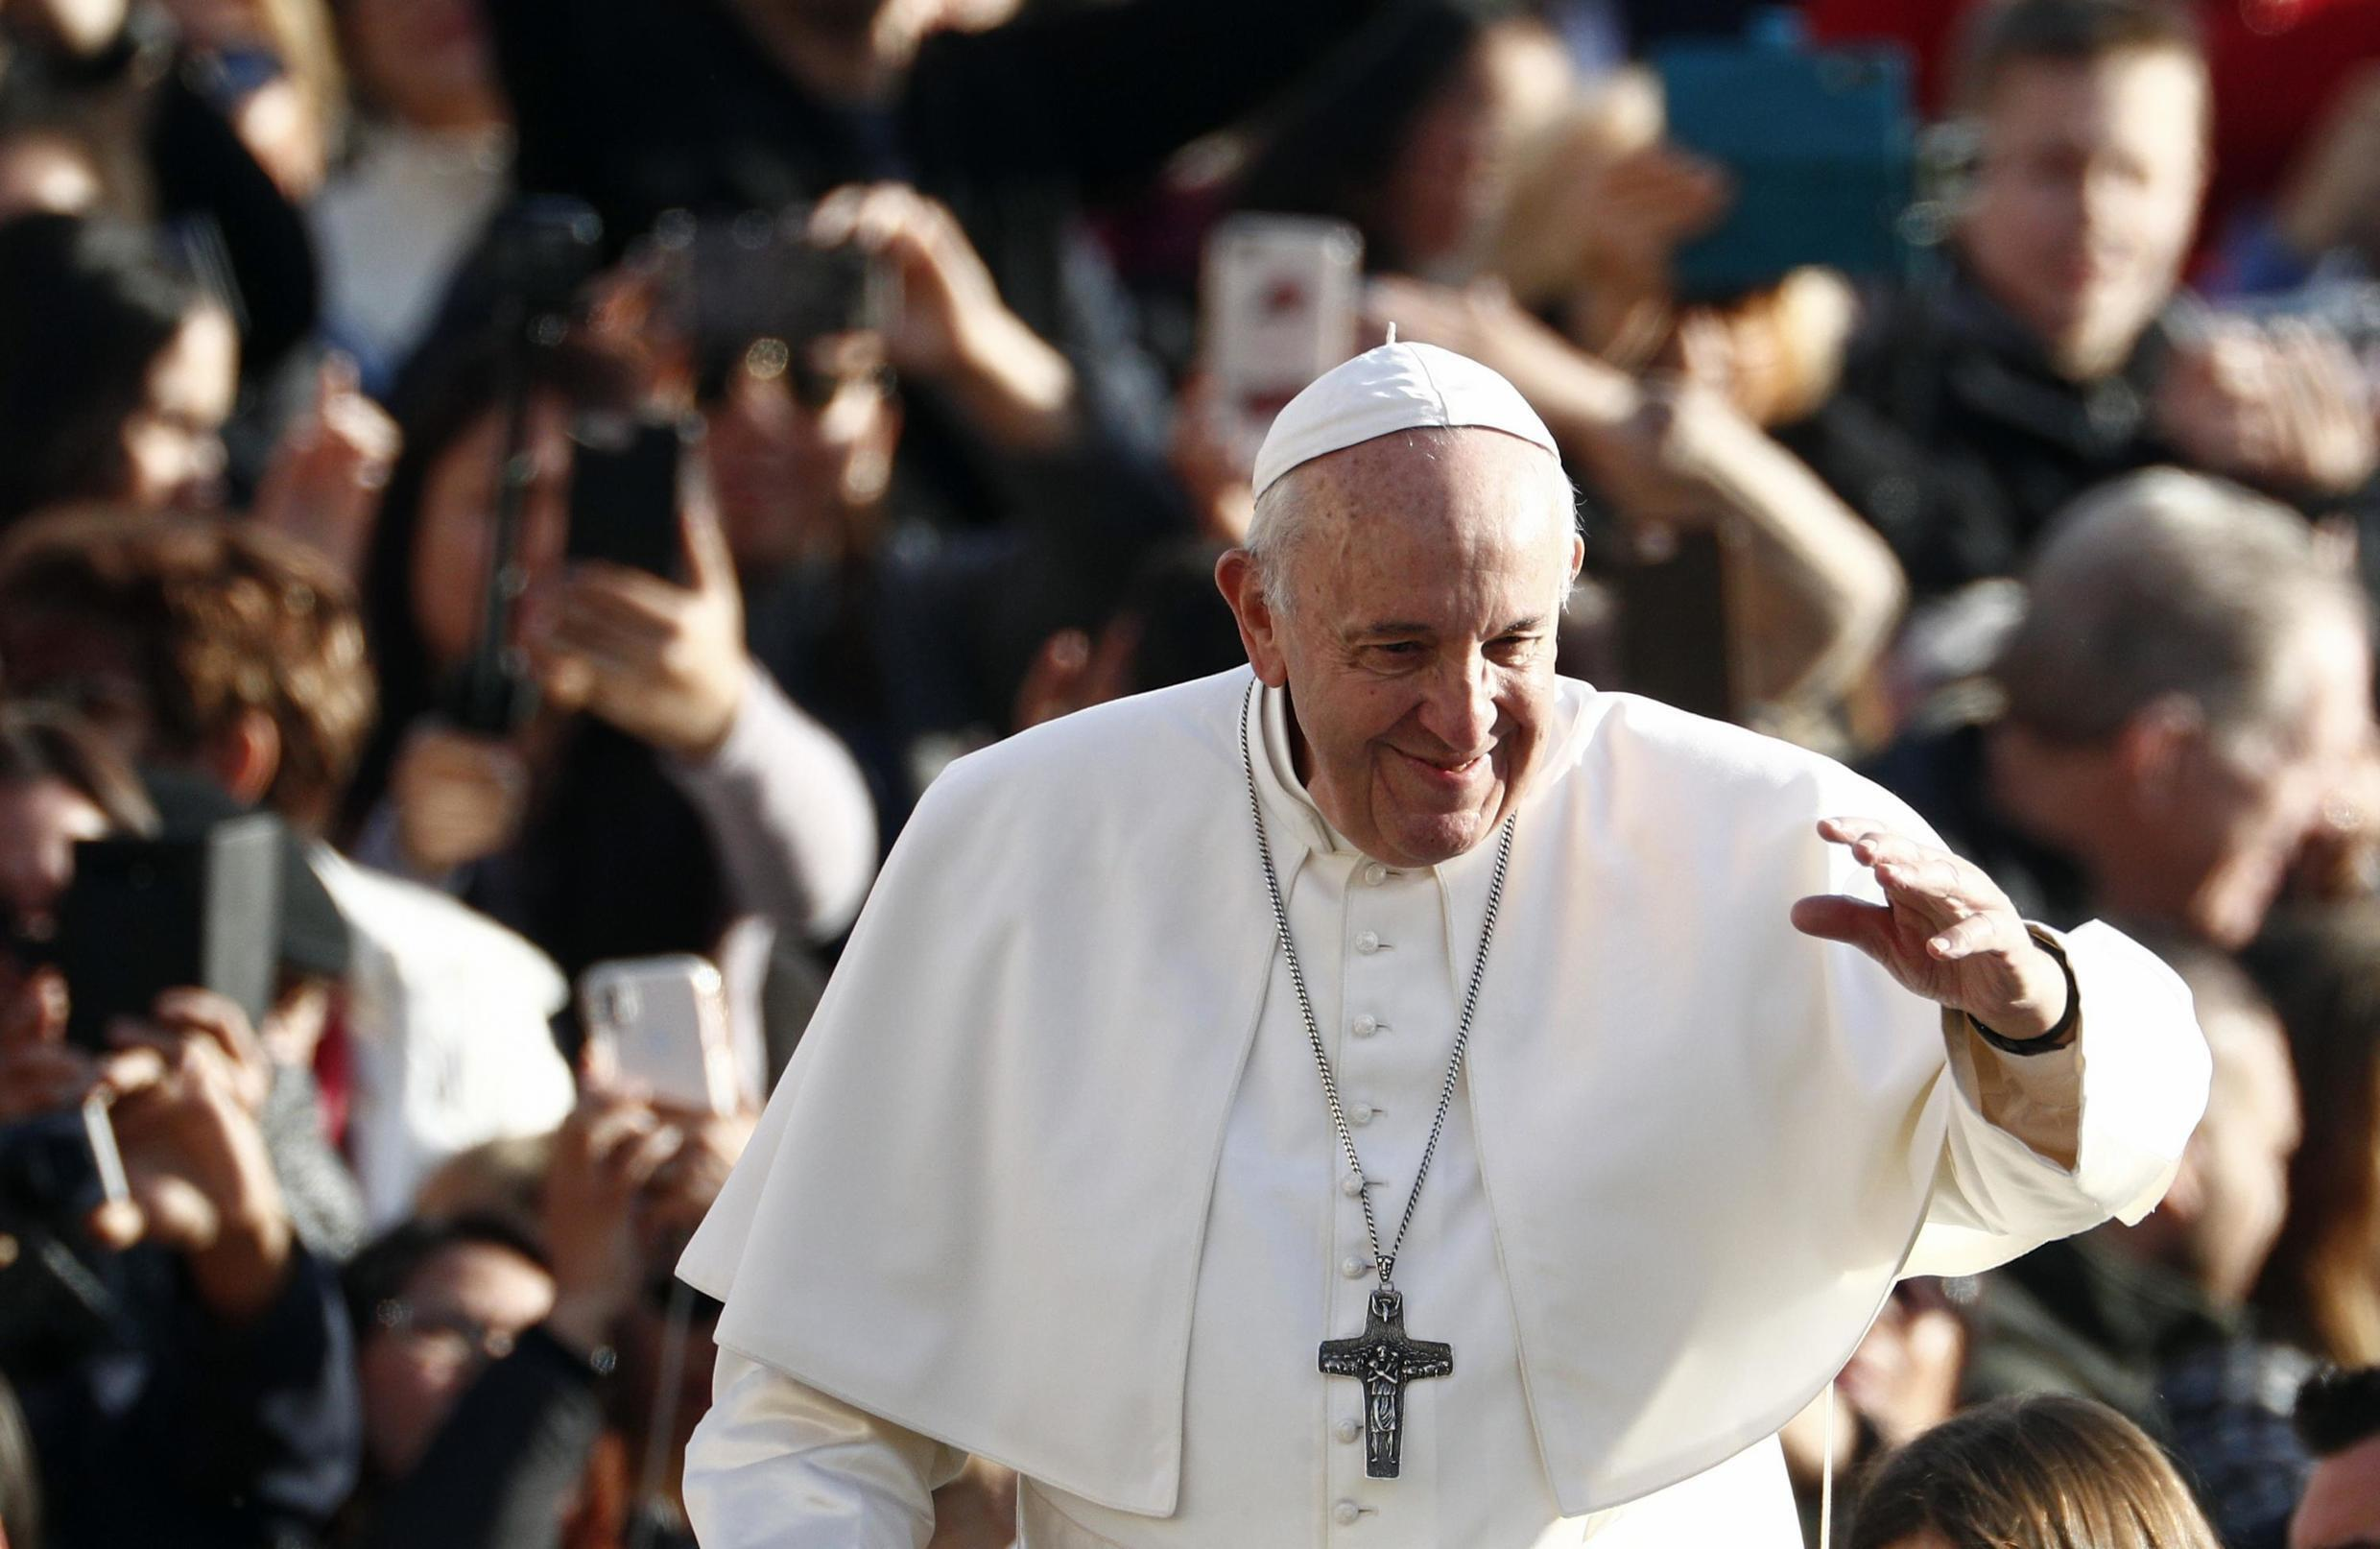 Pope Francis has vowed to crack down on sex abusers within the Catholic church.